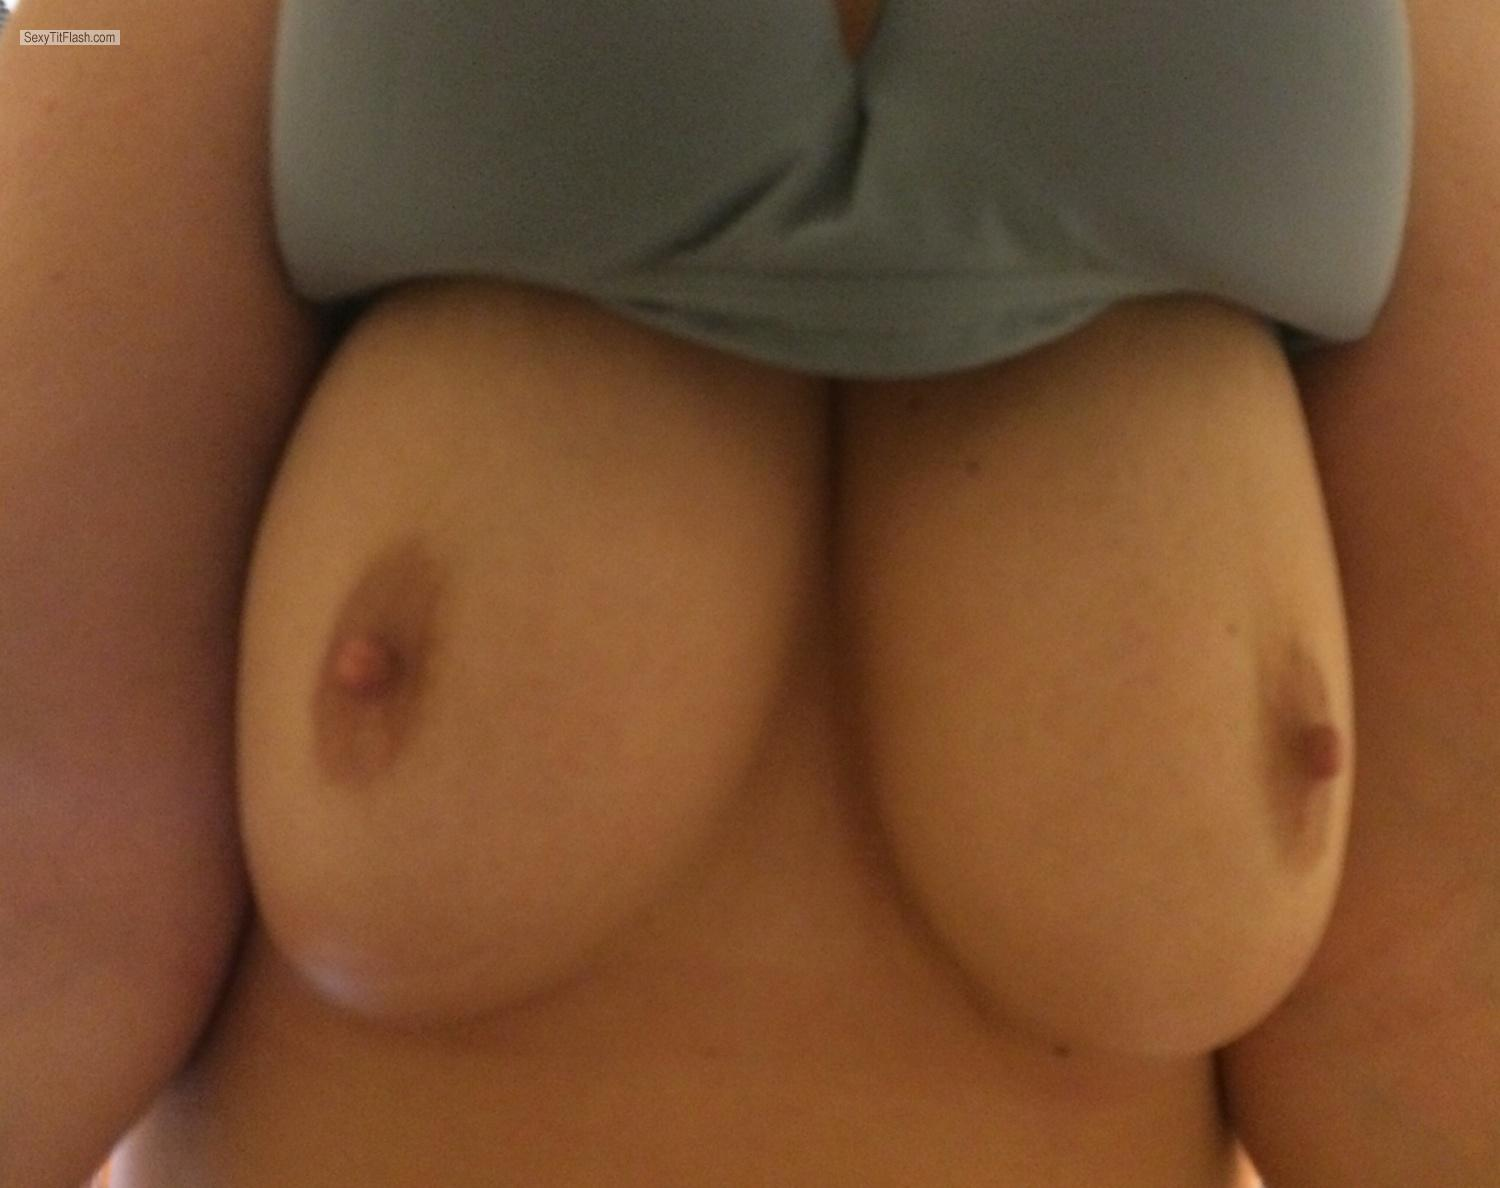 Tit Flash: Medium Tits By IPhone - Sara from United States